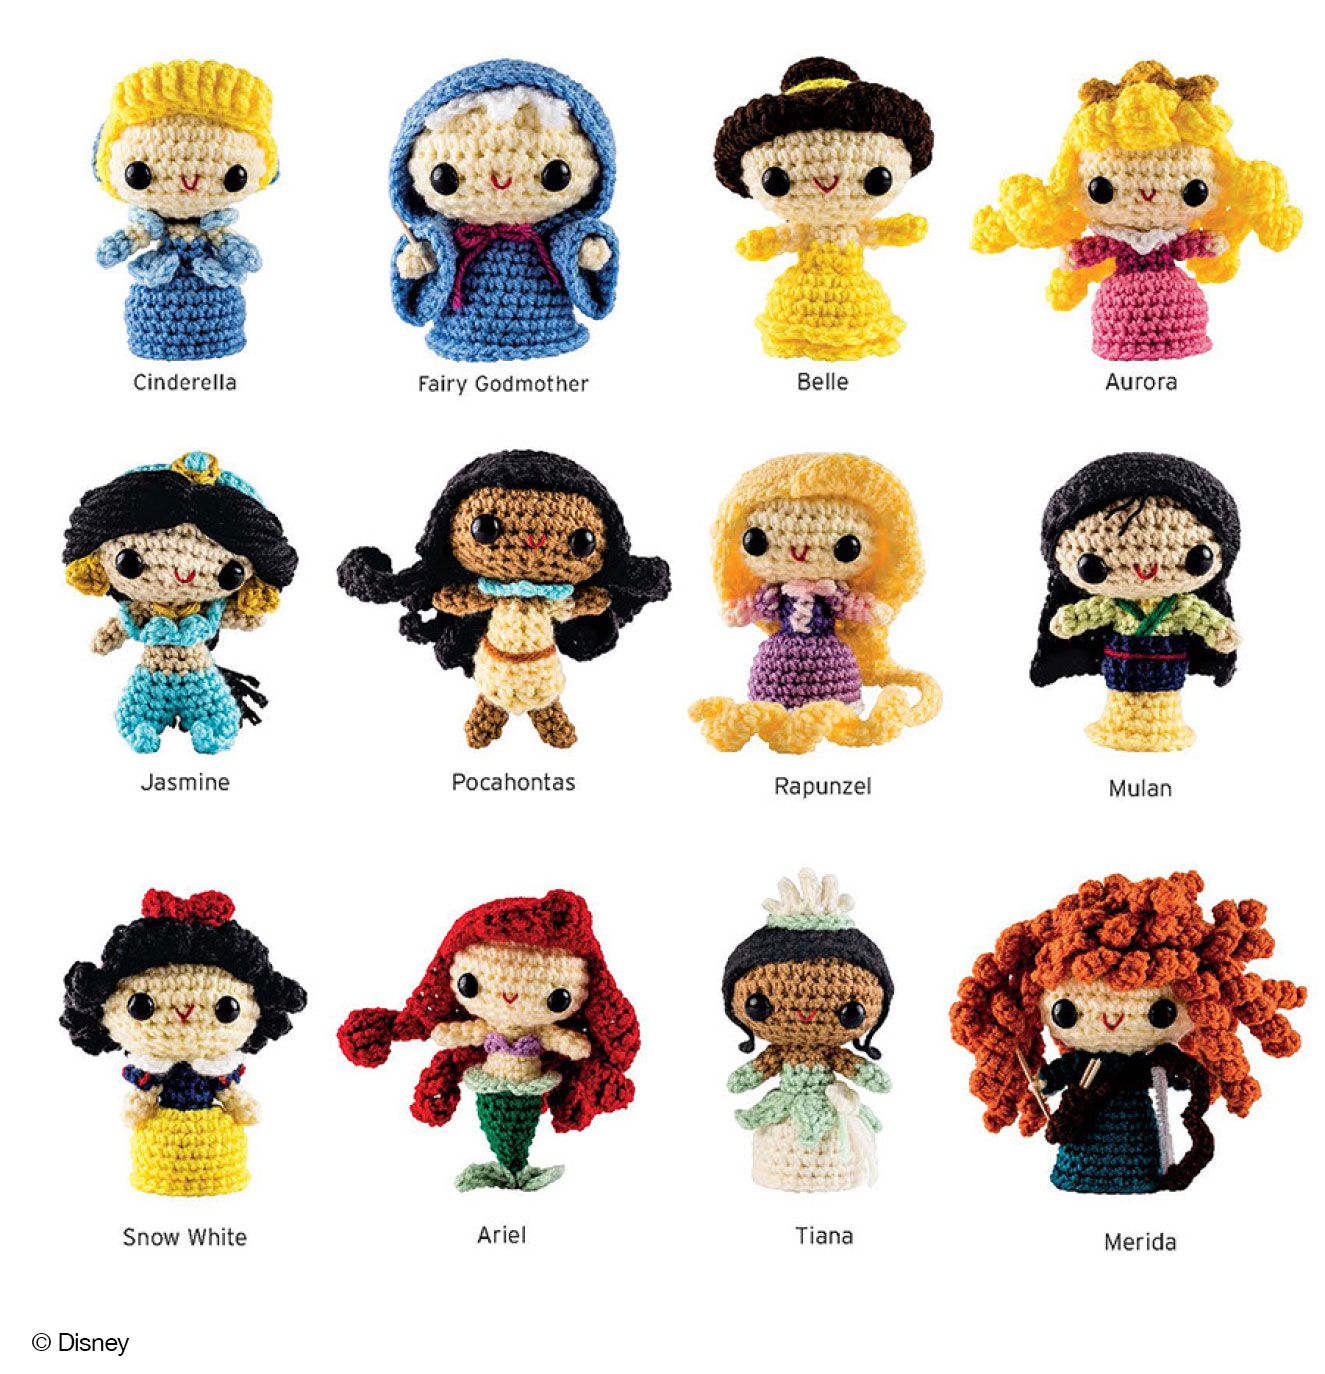 Free Crochet Disney Amigurumi Patterns : Crochet Kits: FROZEN and Princesses Amigurumi Patterns